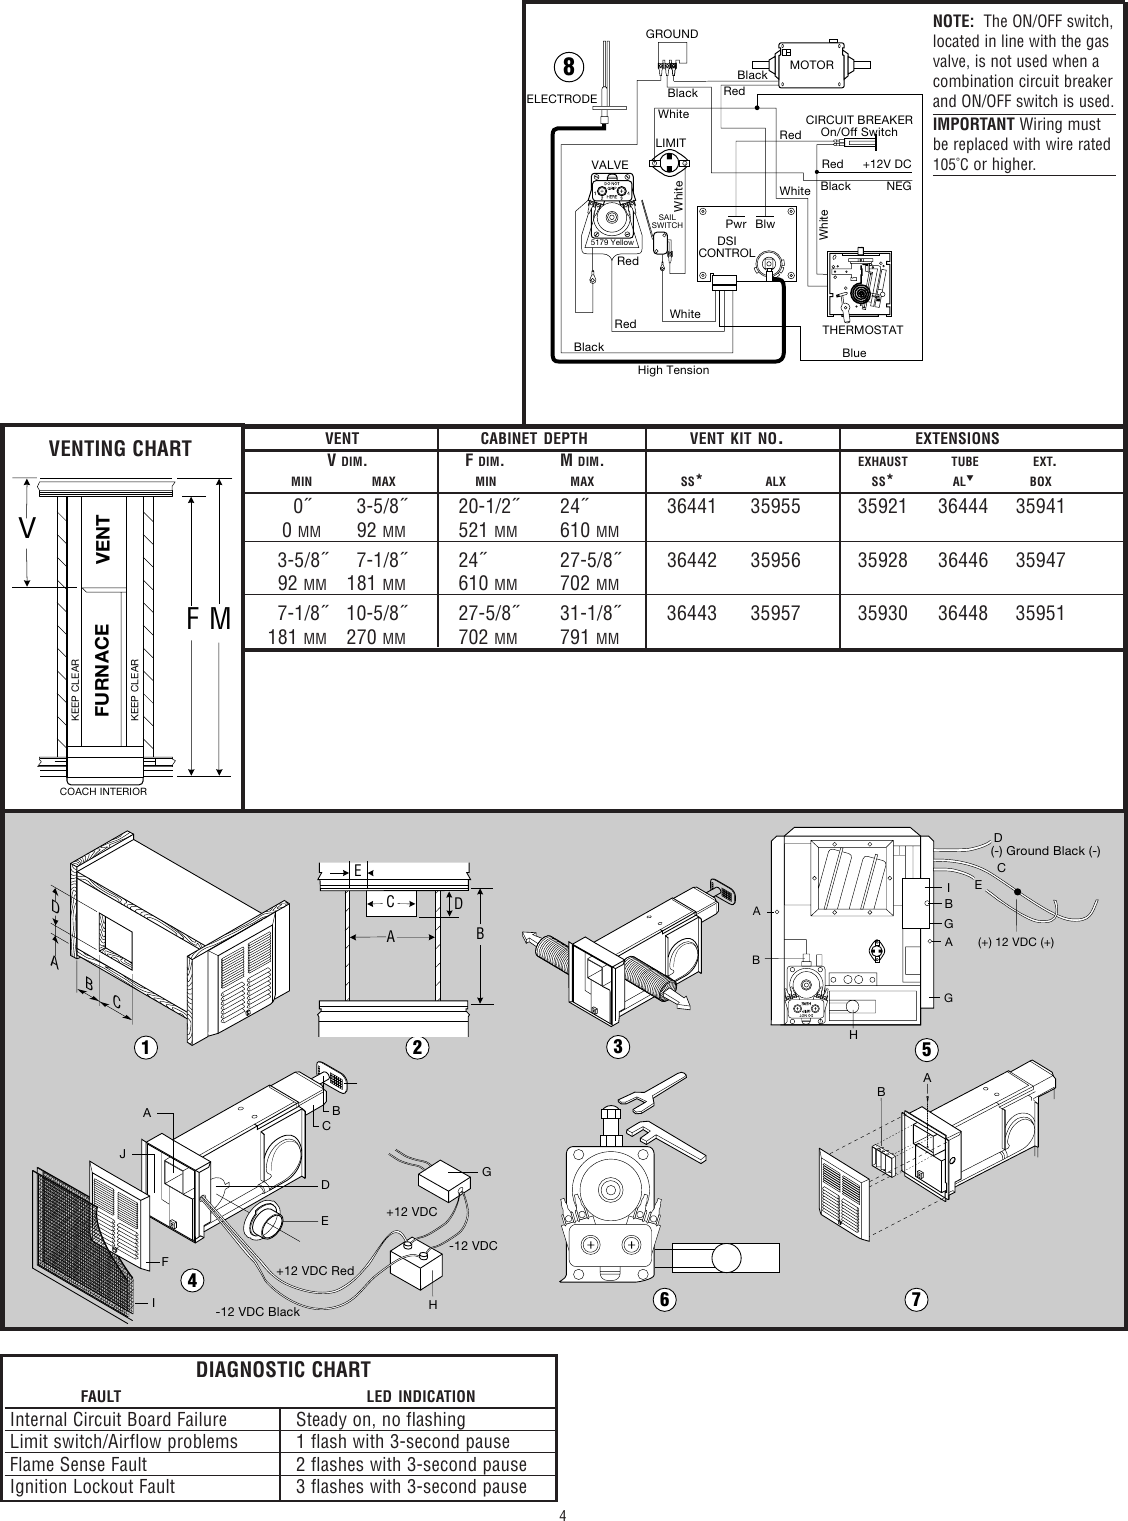 Dometic Atwood Gc6aa Manual Guide